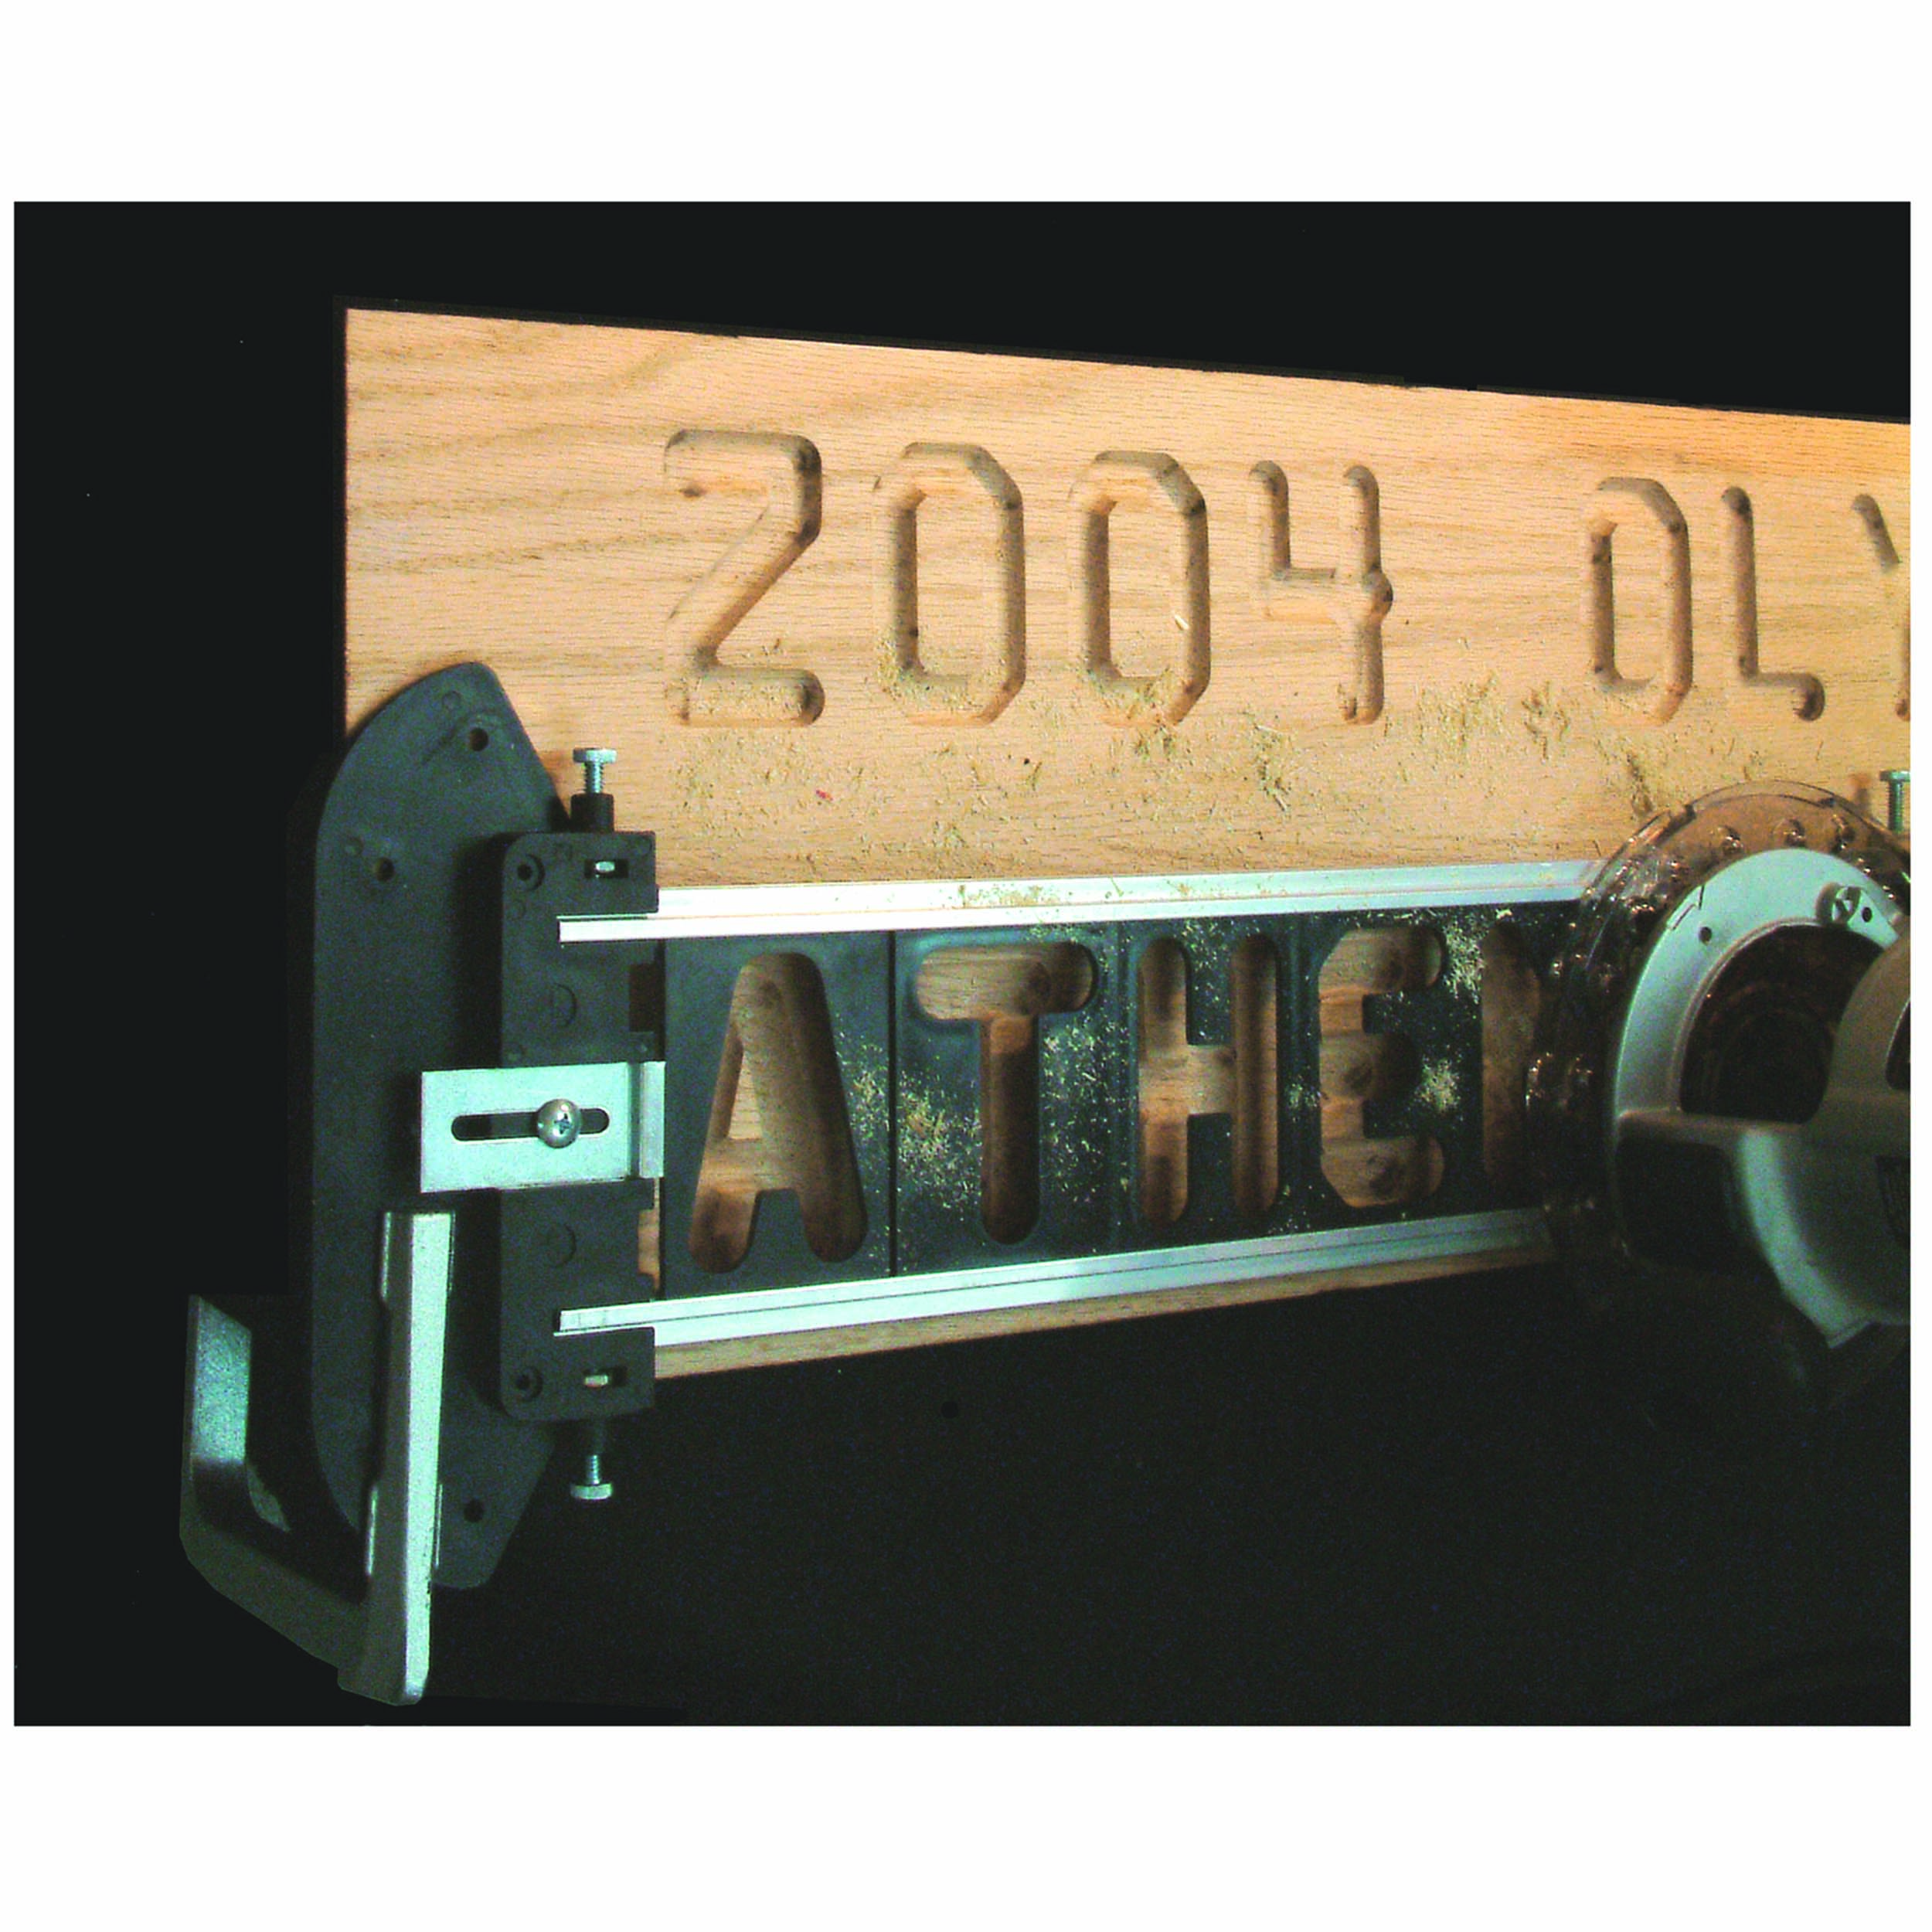 MILESCRAFT INC. 1212 Sign Pro Router Signmaking Jig